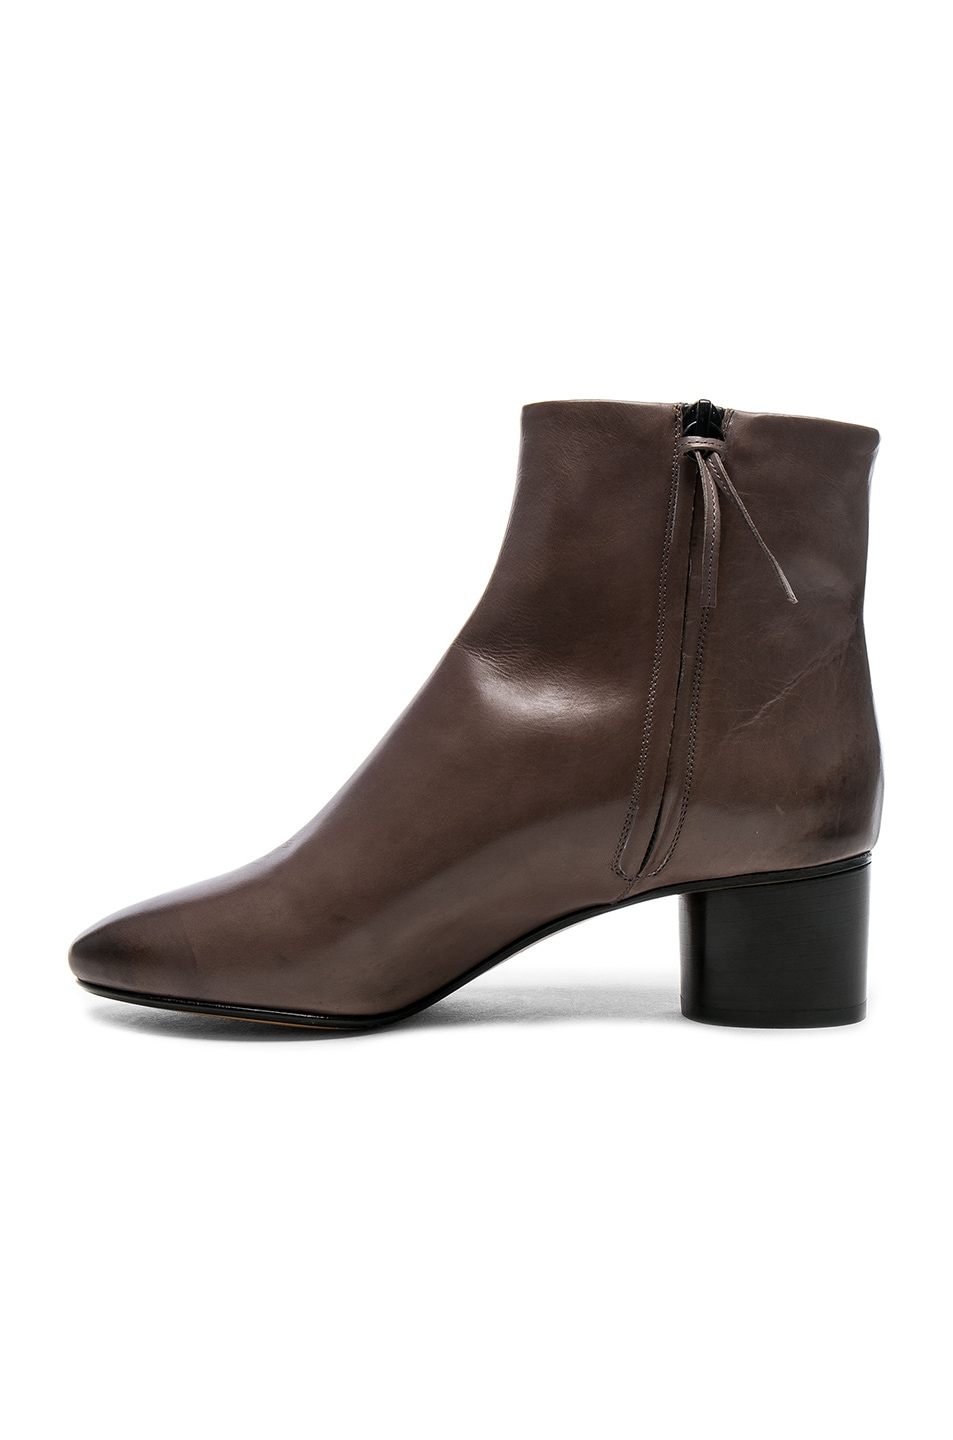 Image 5 of Isabel Marant Leather Danay Boots in Taupe